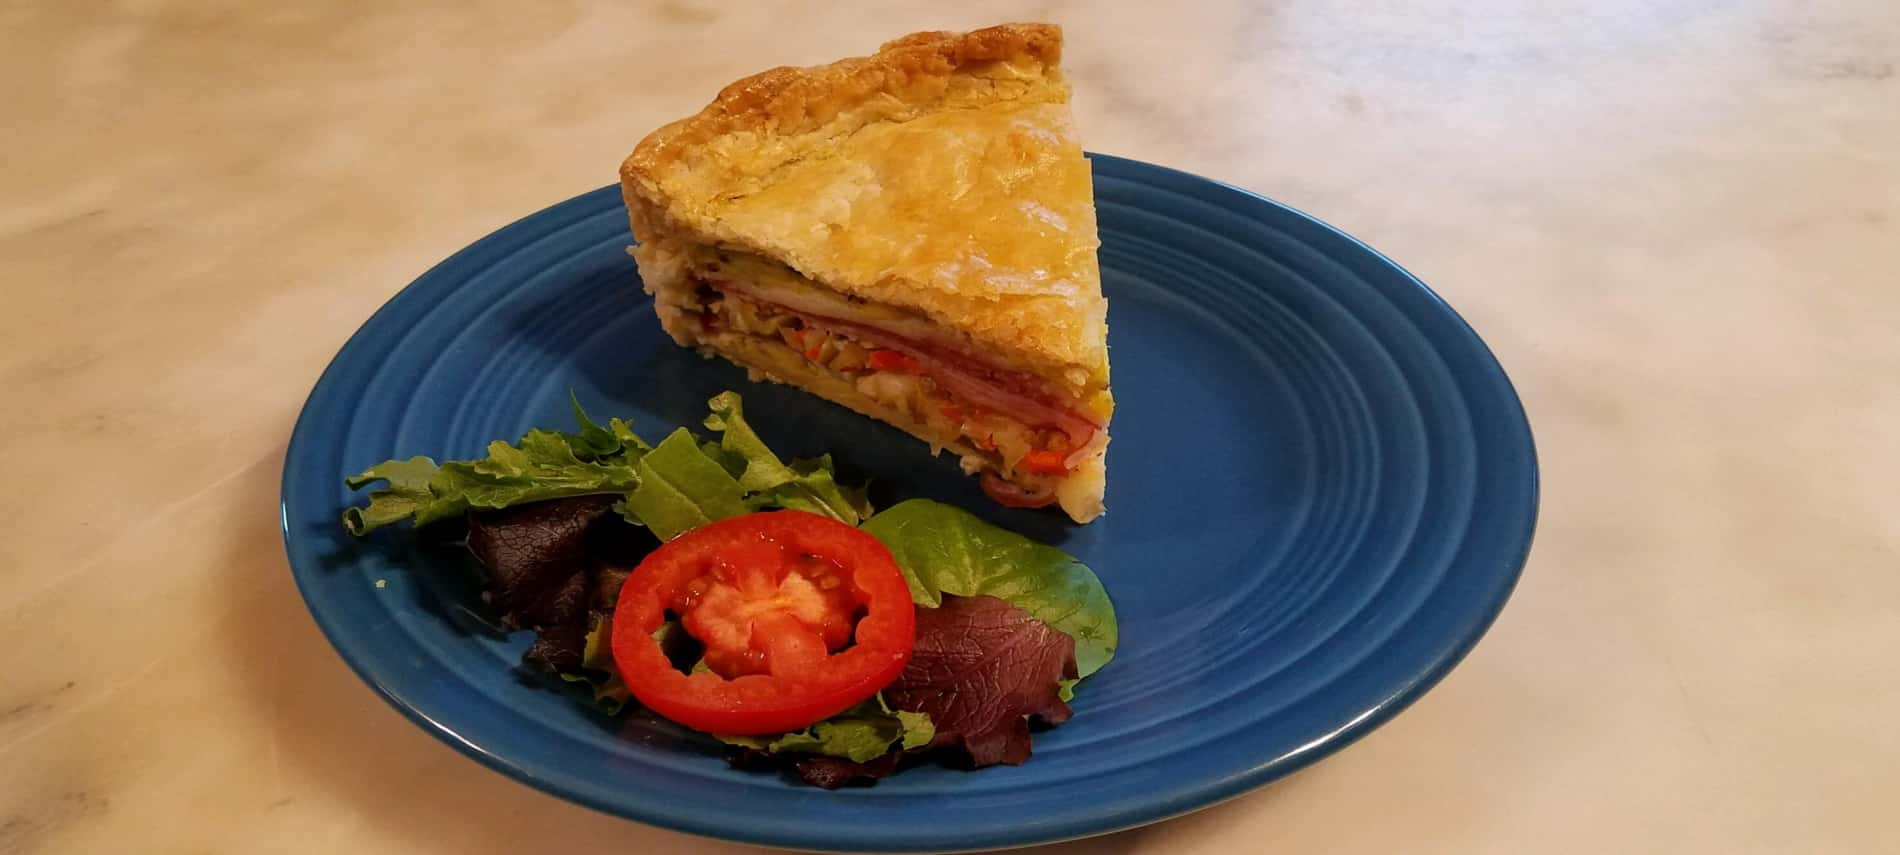 layers of ham, salami, cheese and olive salad in pie crust on blue plate with greens and tomato slice